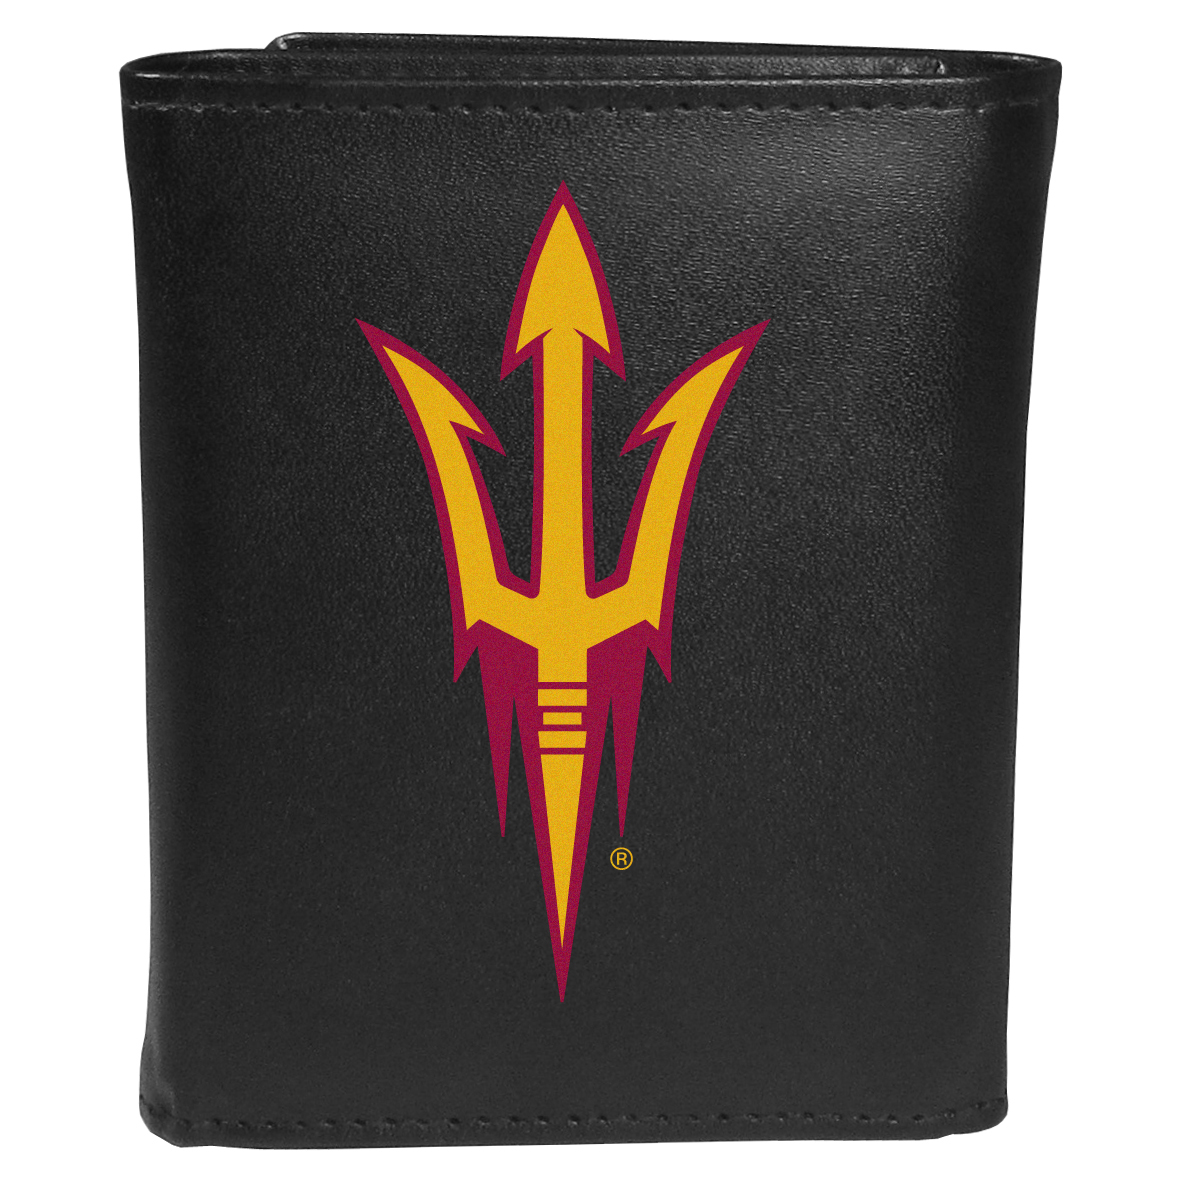 Arizona St. Sun Devils Tri-fold Wallet Large Logo - Sports fans do not have to sacrifice style with this classic tri-fold wallet that sports theArizona St. Sun Devils?extra large logo. This men's fashion accessory has a leather grain look and expert craftmanship for a quality wallet at a great price. The wallet features inner credit card slots, windowed ID slot and a large billfold pocket. The front of the wallet features an extra large printed team logo.